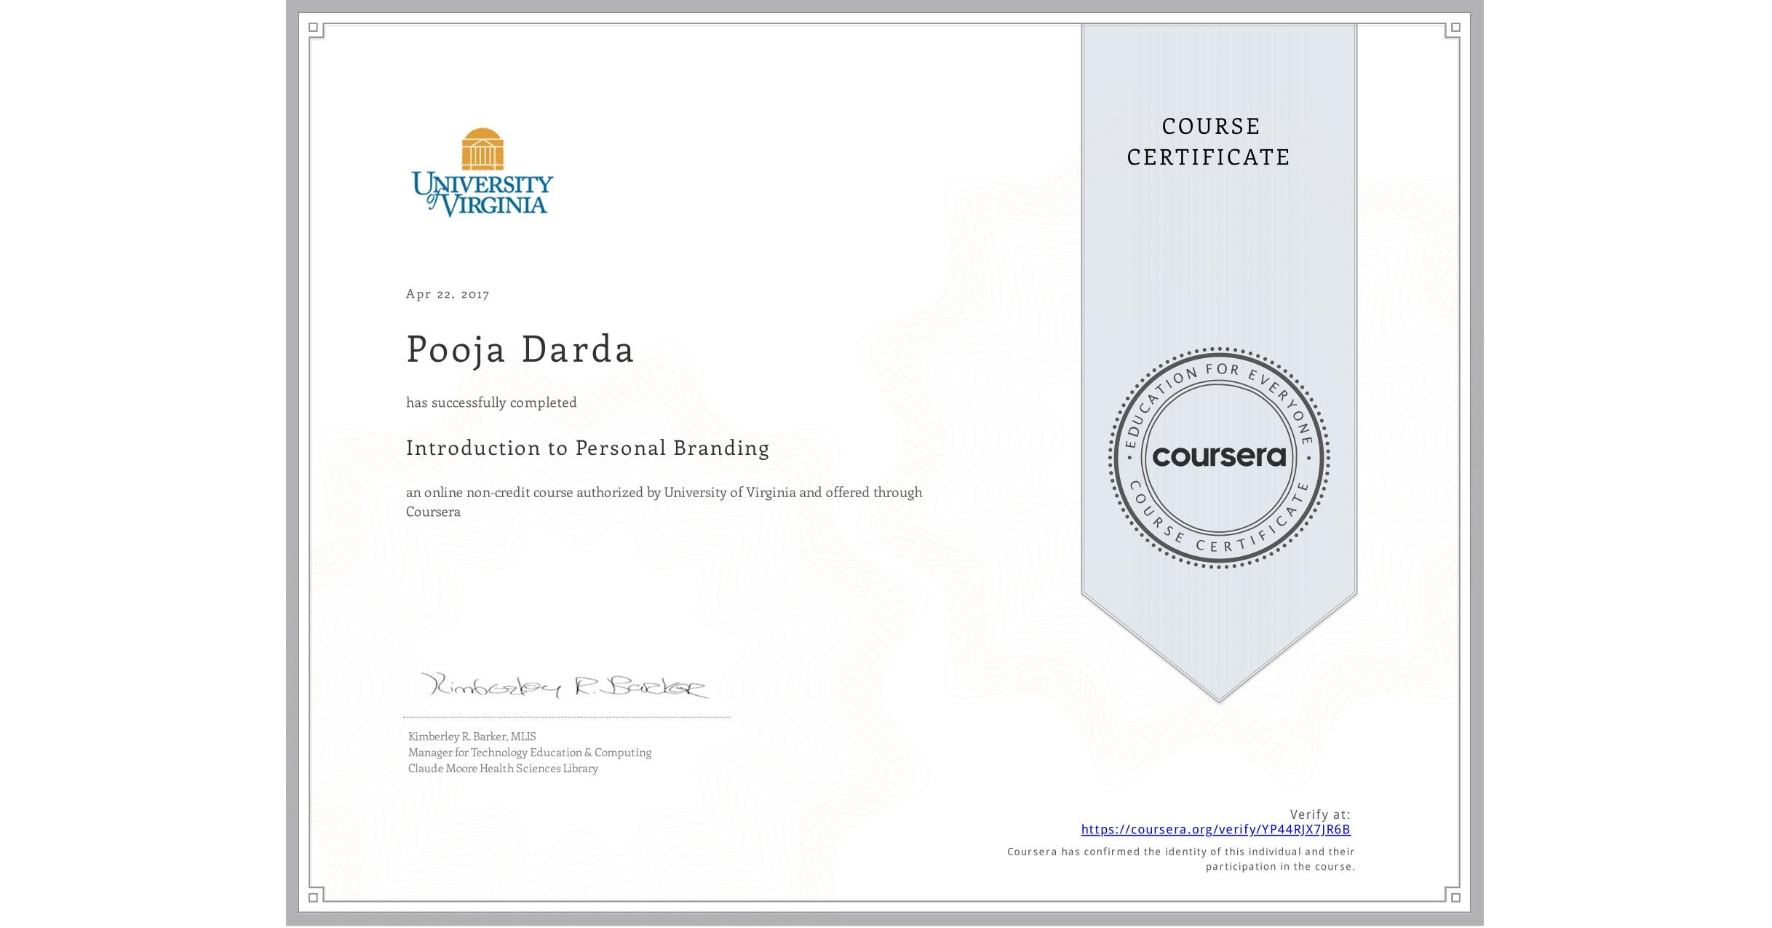 View certificate for Pooja Darda, Introduction to Personal Branding, an online non-credit course authorized by University of Virginia and offered through Coursera